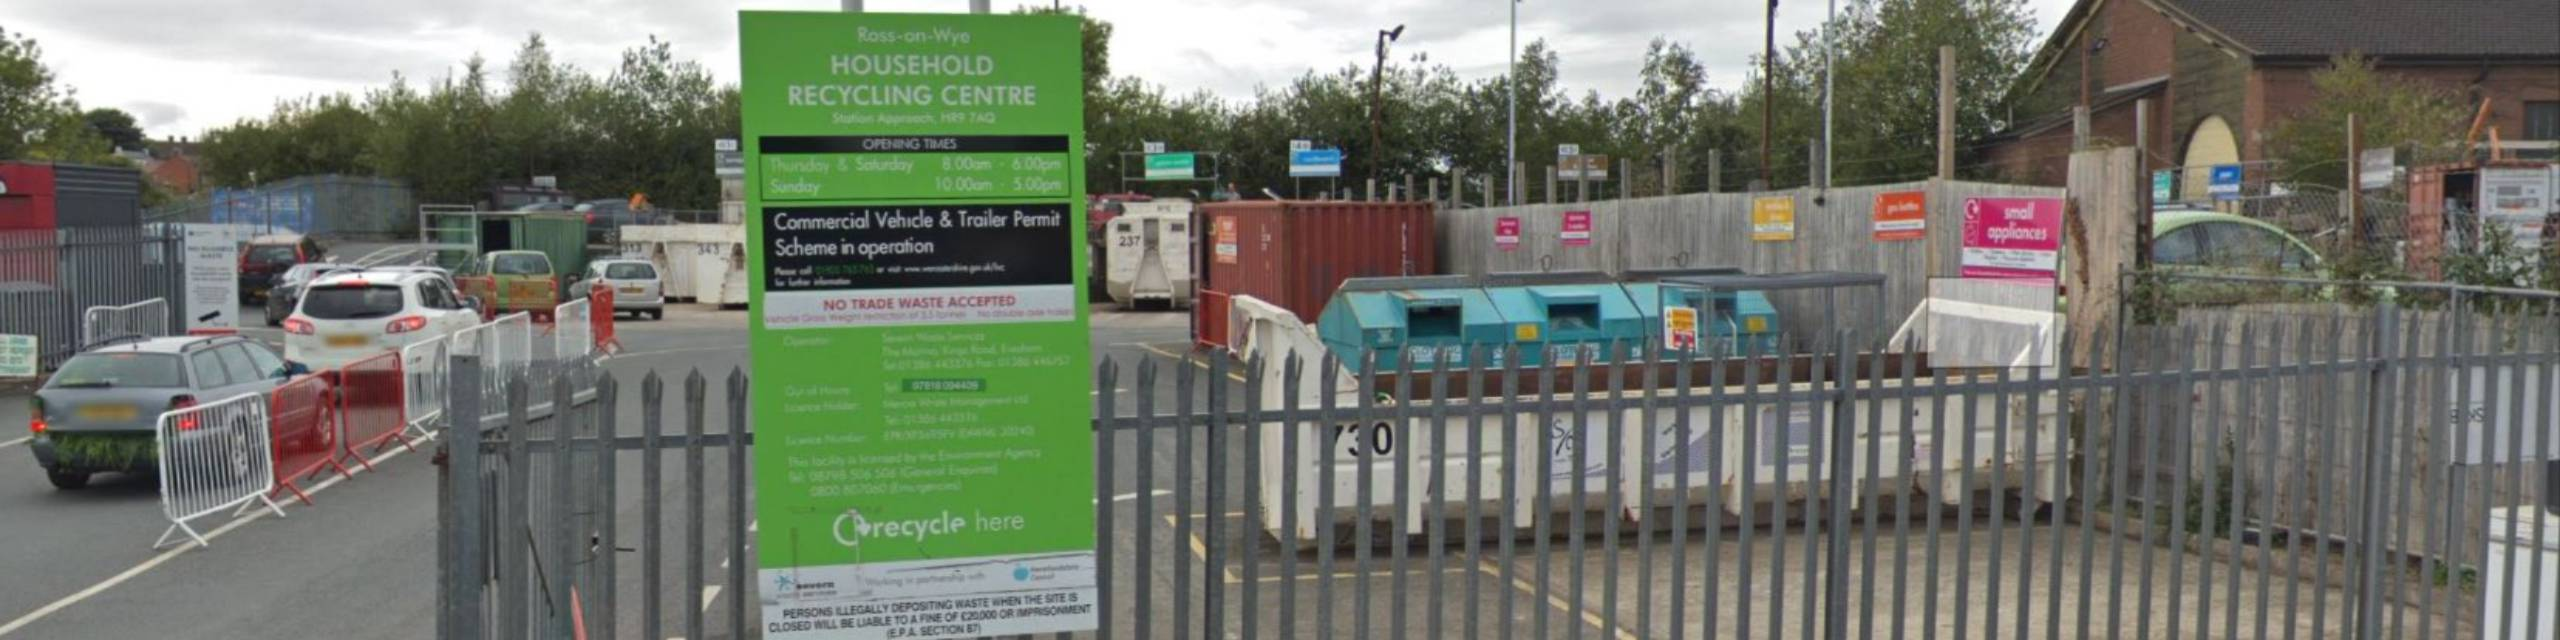 Newsroom banner for Ross-on-Wye Household Recycling Centre